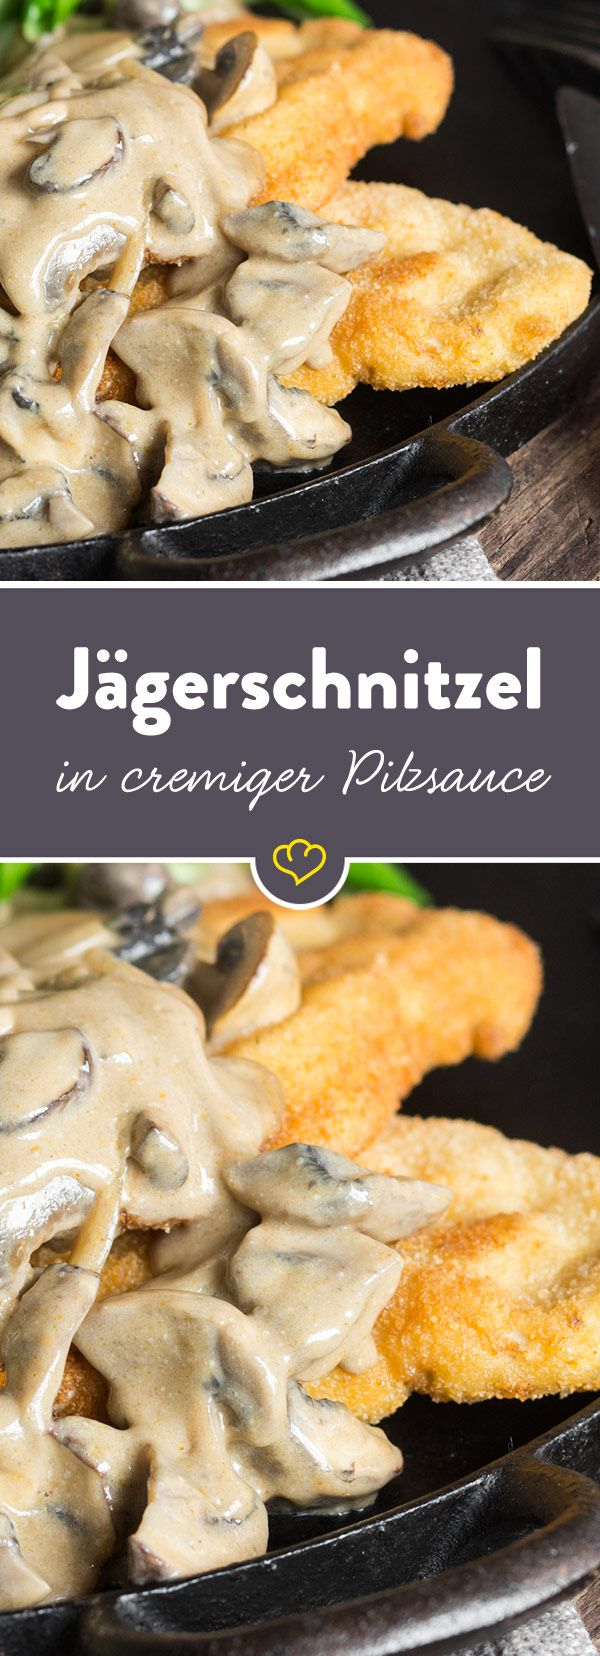 Classic hunter's schnitzel with chanterelle mushroom sauce